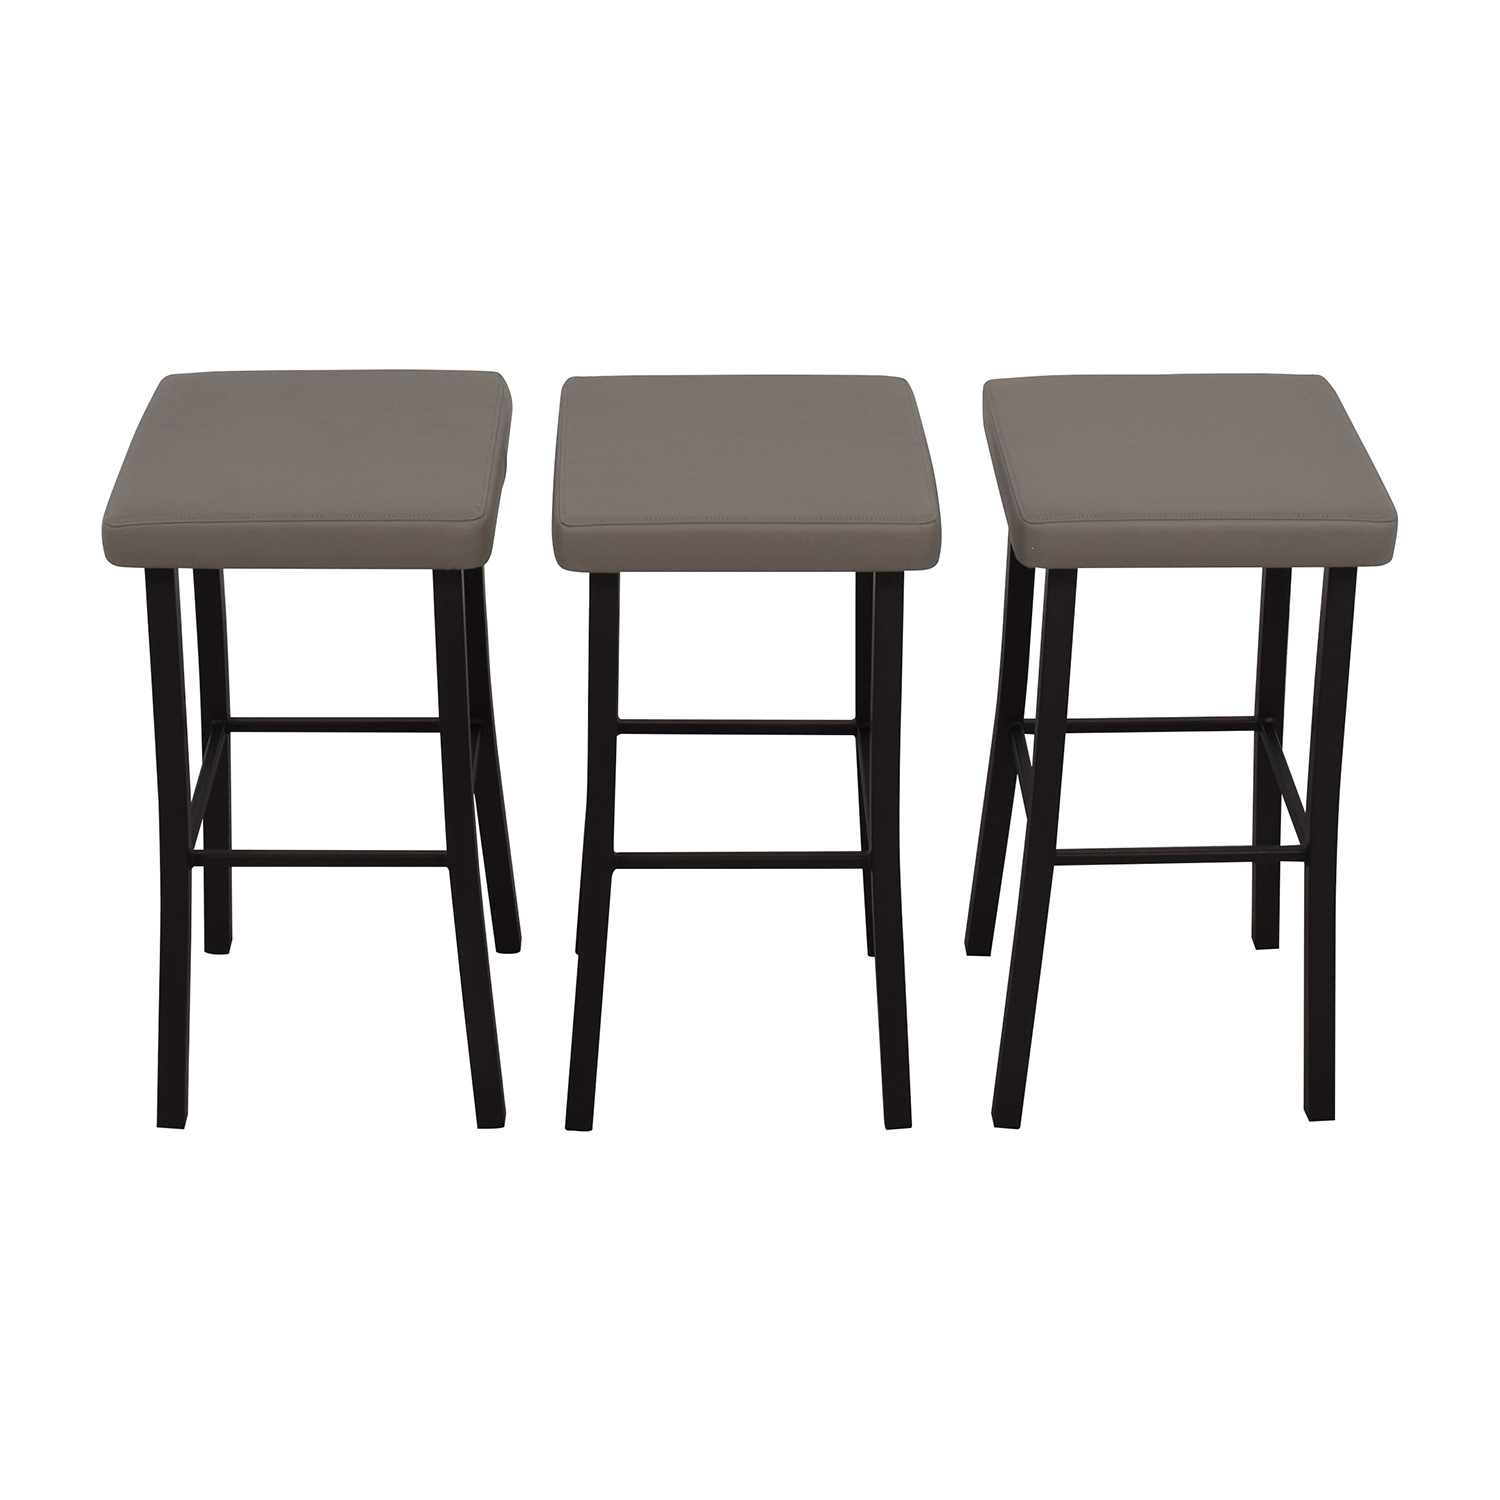 amisco amisco ryan grey faux leather stool dimensions - Amisco Bar Stools